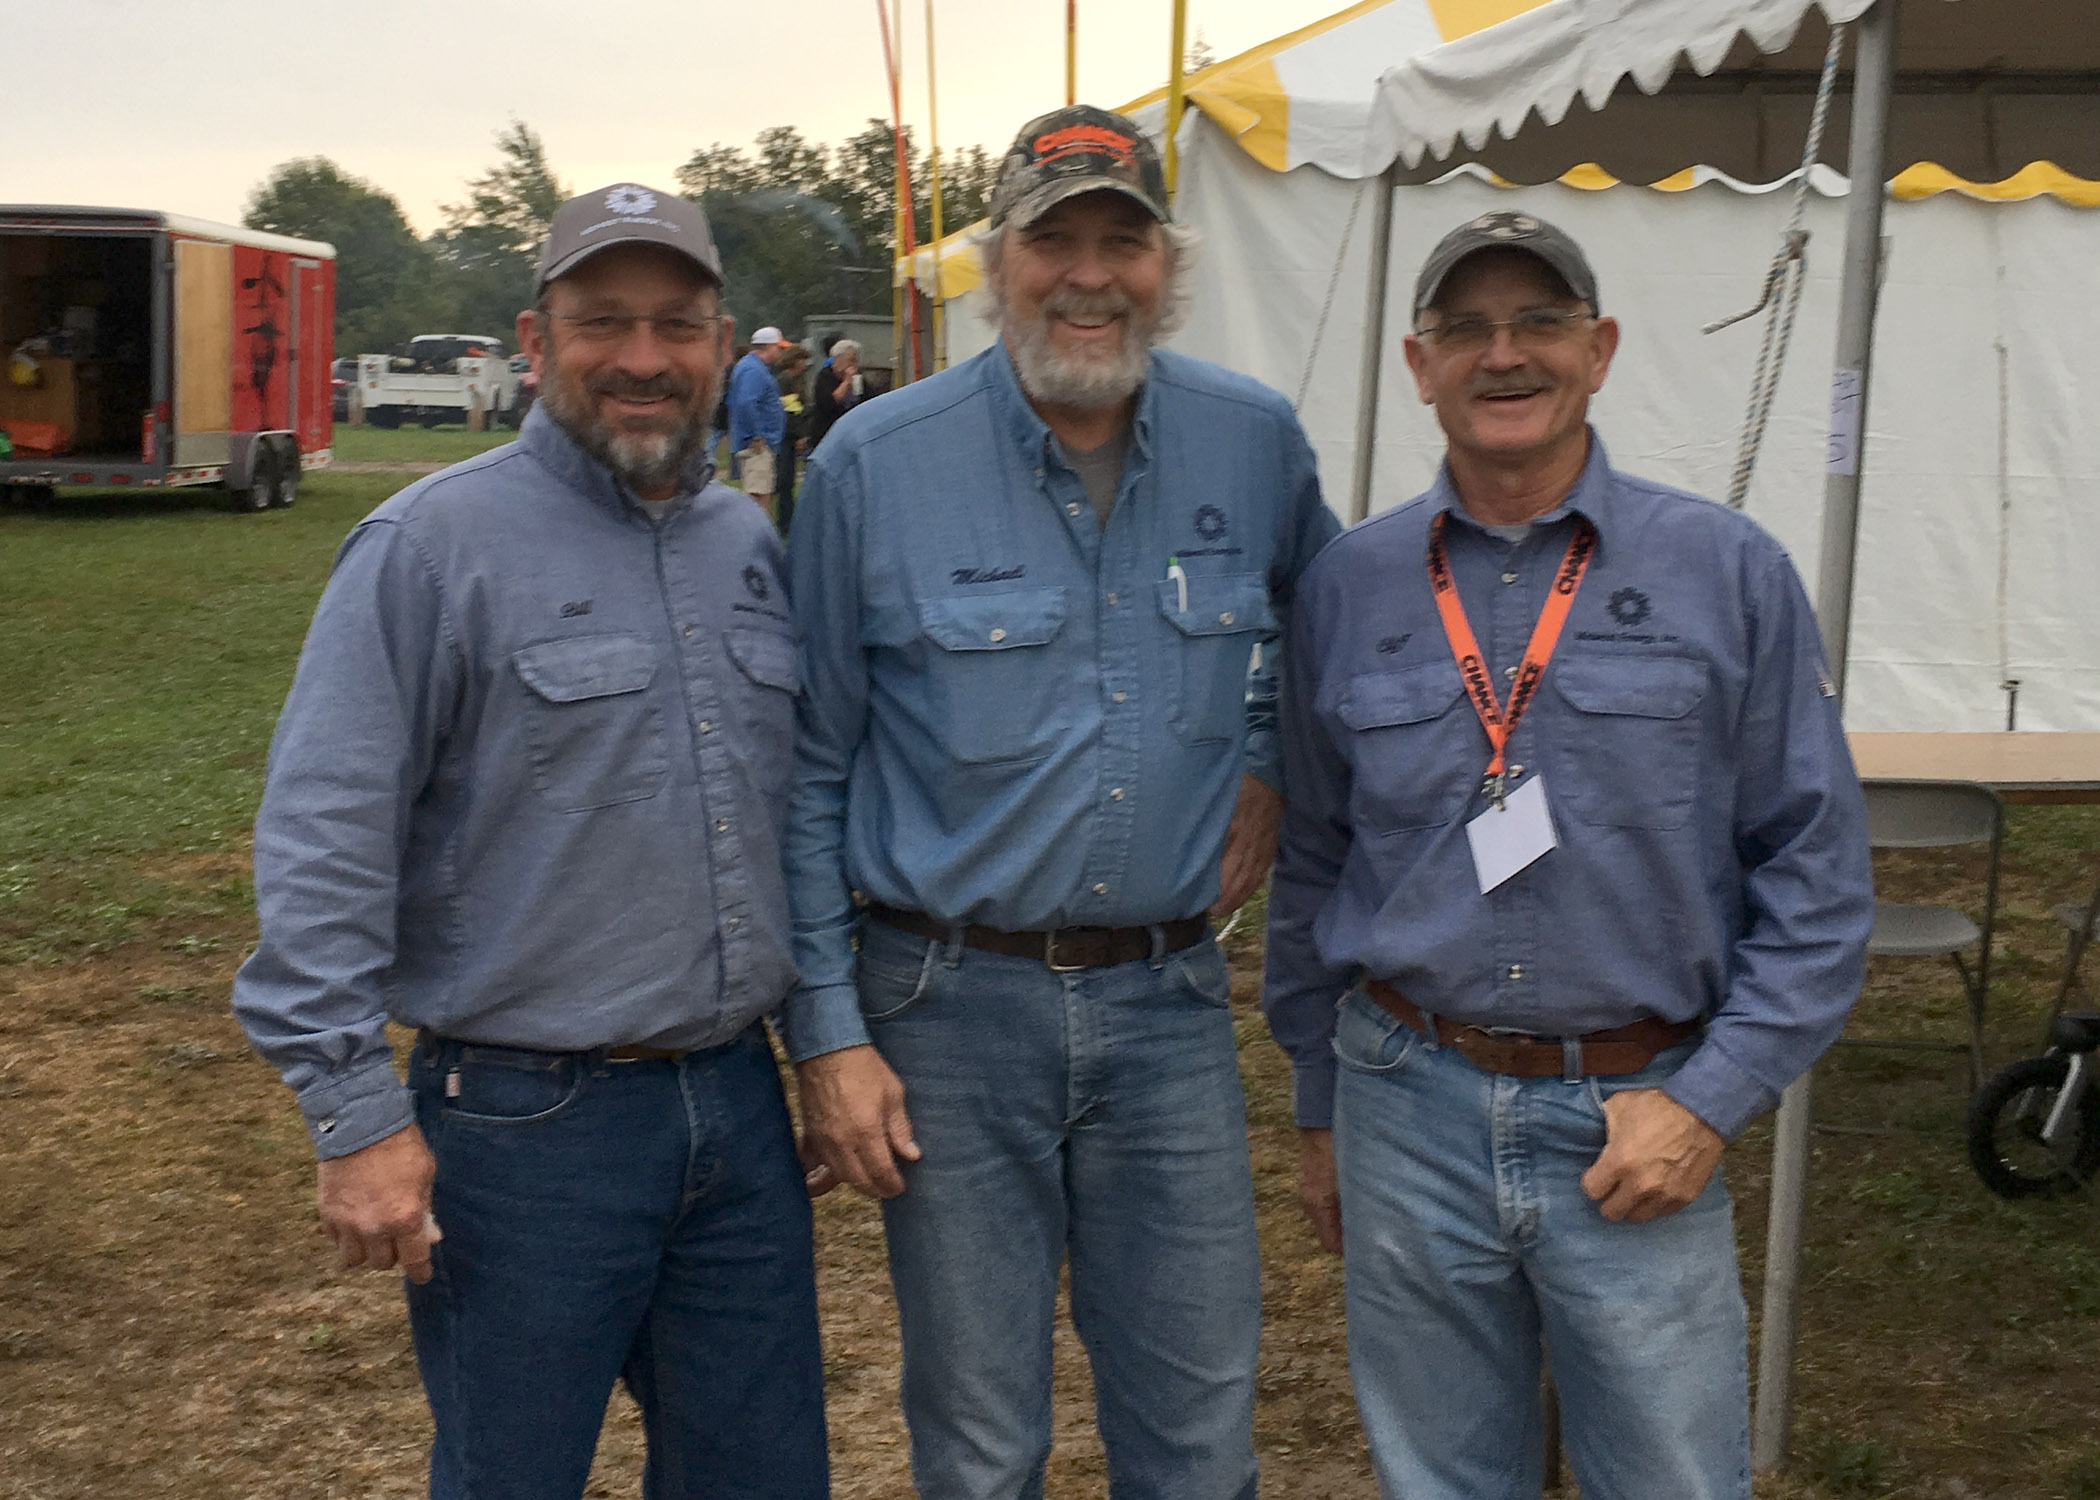 A photo of Midwest Energy's Senior Lineman's Rodeo Team, of Bill Nowlin, Line Foreman from WaKeeney, Mike Stremel, Training Manager at Hays, and Cliff Townsend, Journeyman Lineman at Kinsley, took 3rd in their division at the competition in Bonner Springs, Oct. 14.